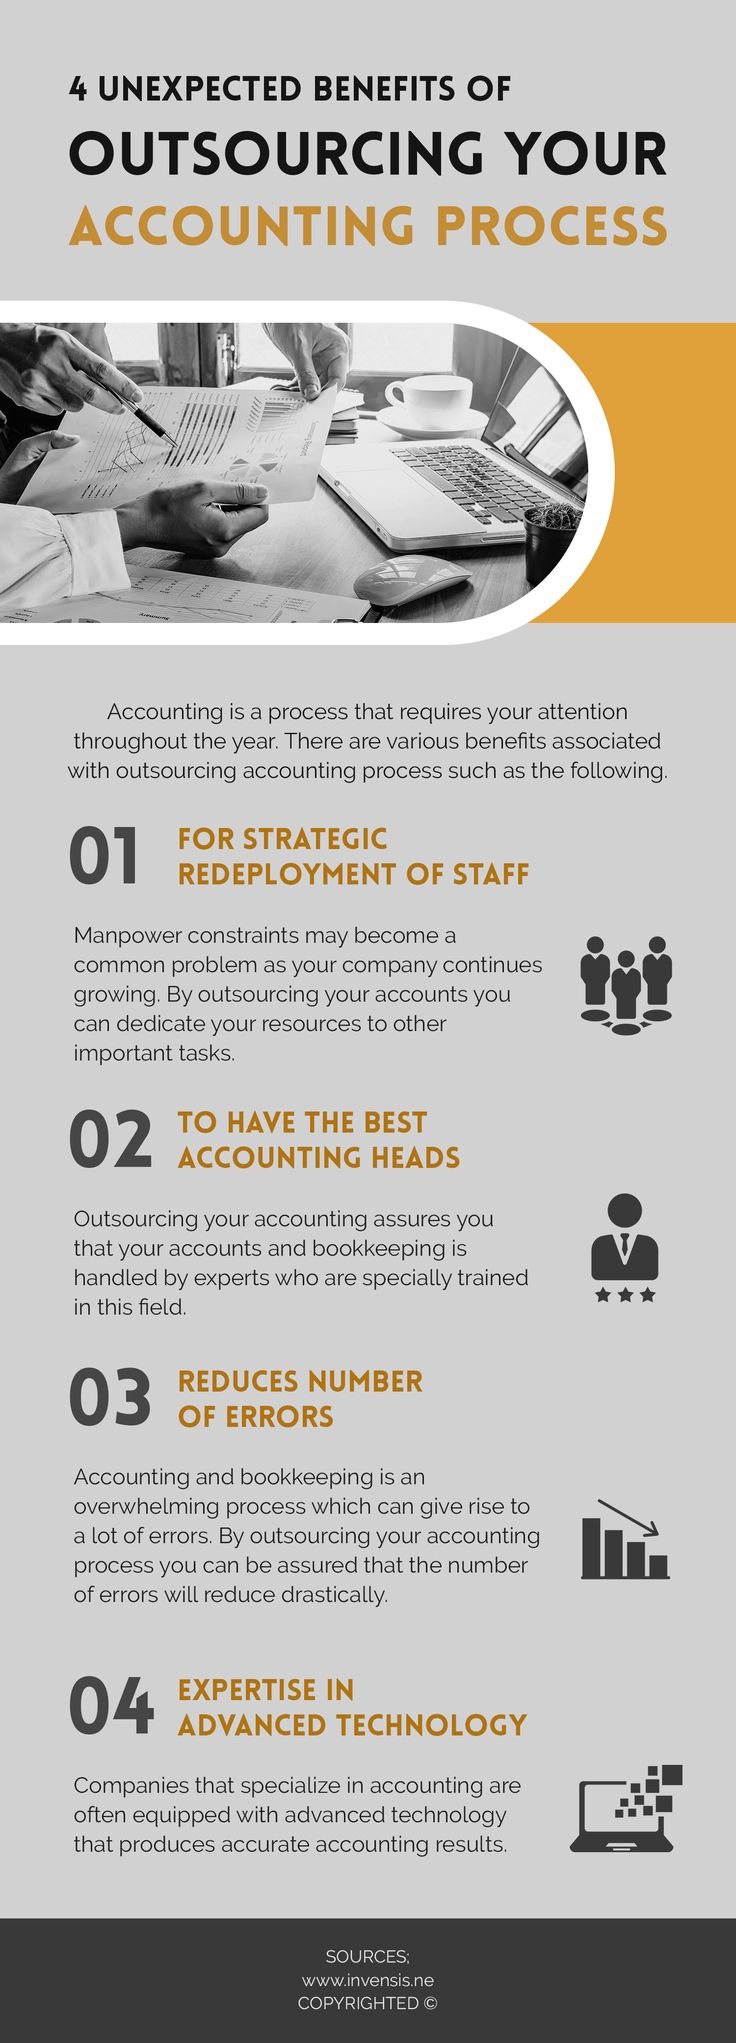 How Outsourcing Your Accounting Process Can Be Beneficial For You?  Accounting process can seem to be very overwhelming. By outsourcing your accounting process you can have the best accounting head on the job. Read the infographic to know more benefits.